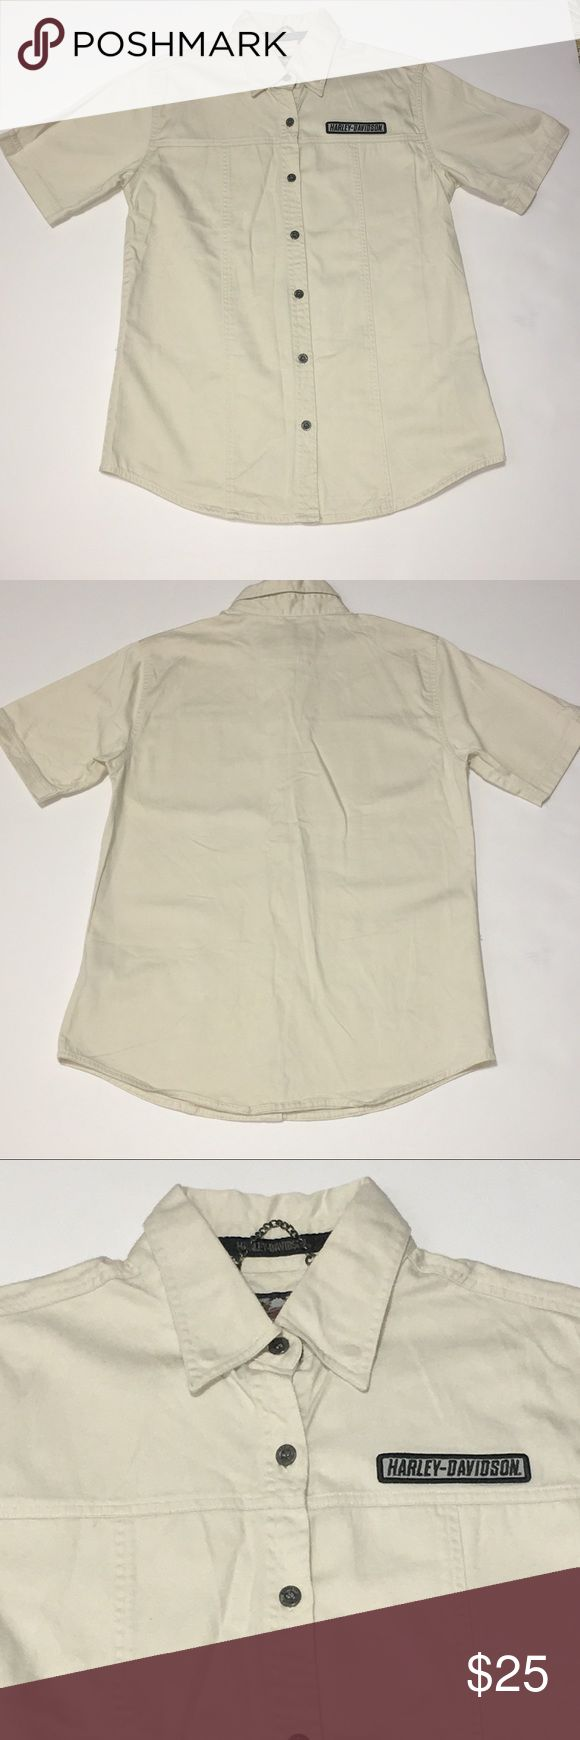 """Harley Davidson Cotton Button Front Camp Shirt SM Women's beige Harley Davidson Camp / Utility shirt.  100% Cotton. Button front. Harley patch on front.  Size small.  Approximate Measurements:  Bust Flat - 19"""", Shoulders Flat - 16"""", Hem Opening Buttoned - 20"""", Overall Length - 27"""". Excellent gently loved condition and from a smoke free home. Harley-Davidson Tops Button Down Shirts"""